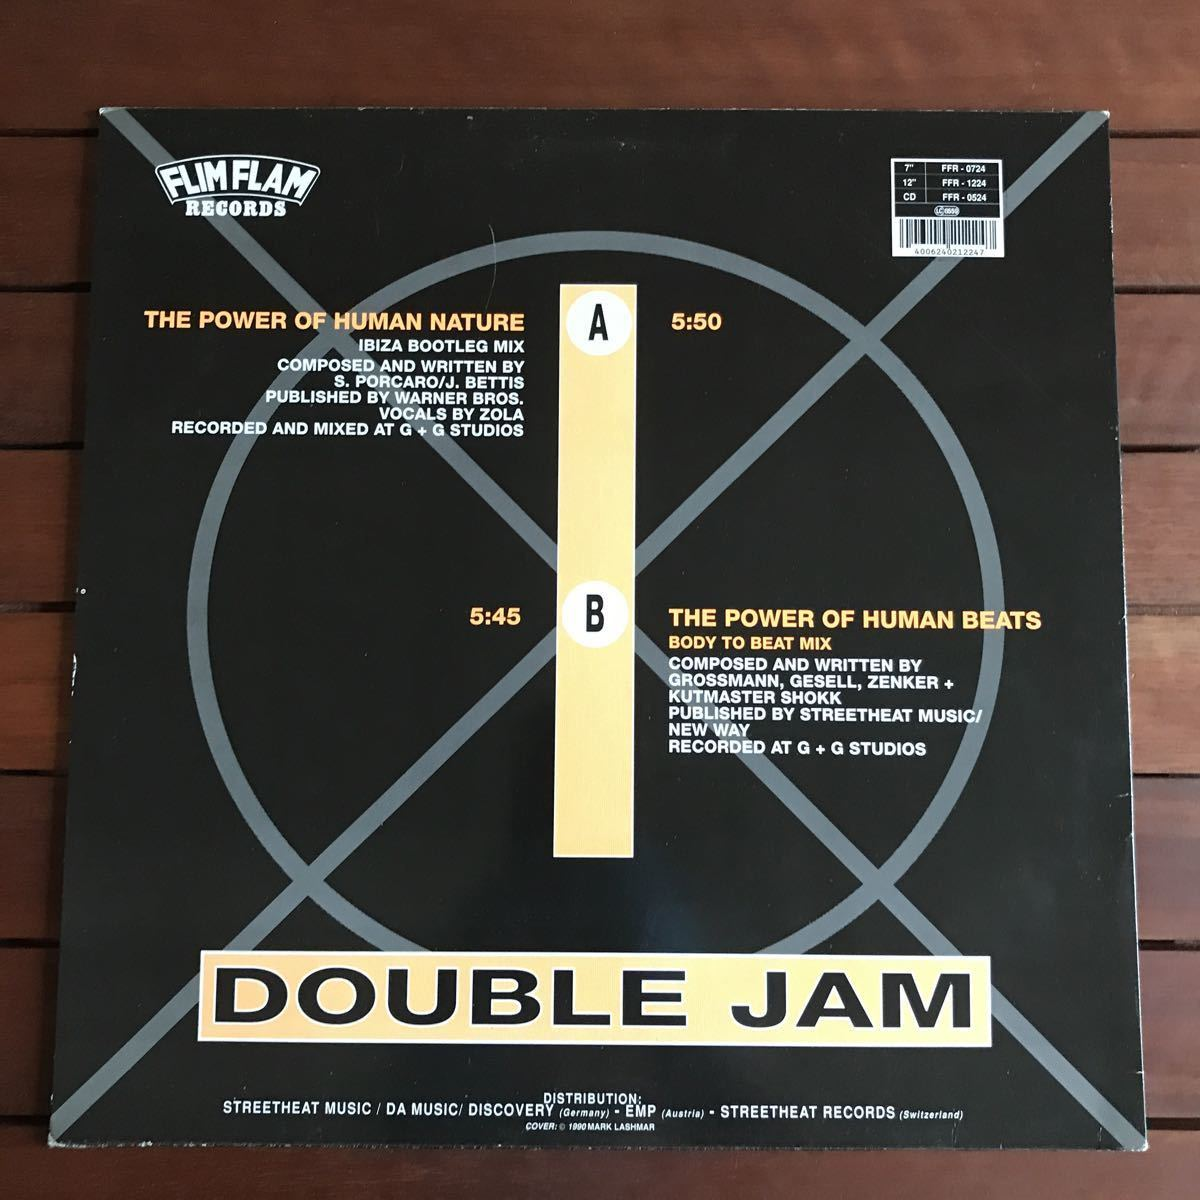 ●【r&b】Double Jam / The Power Of Human Nature [12inch]オリジナル盤